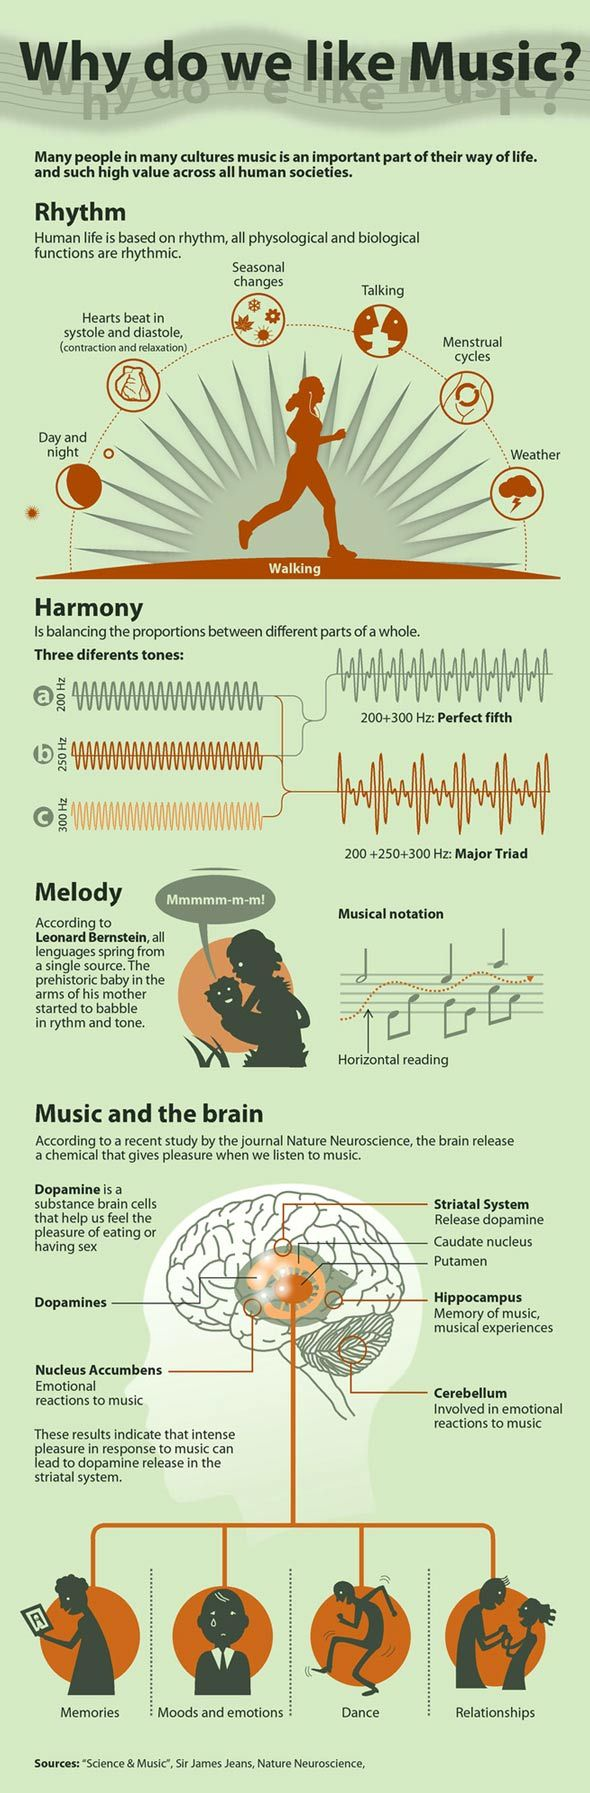 Why Do We Like Music? Because music makes the world go round. But here's an infographic to break it down for us.